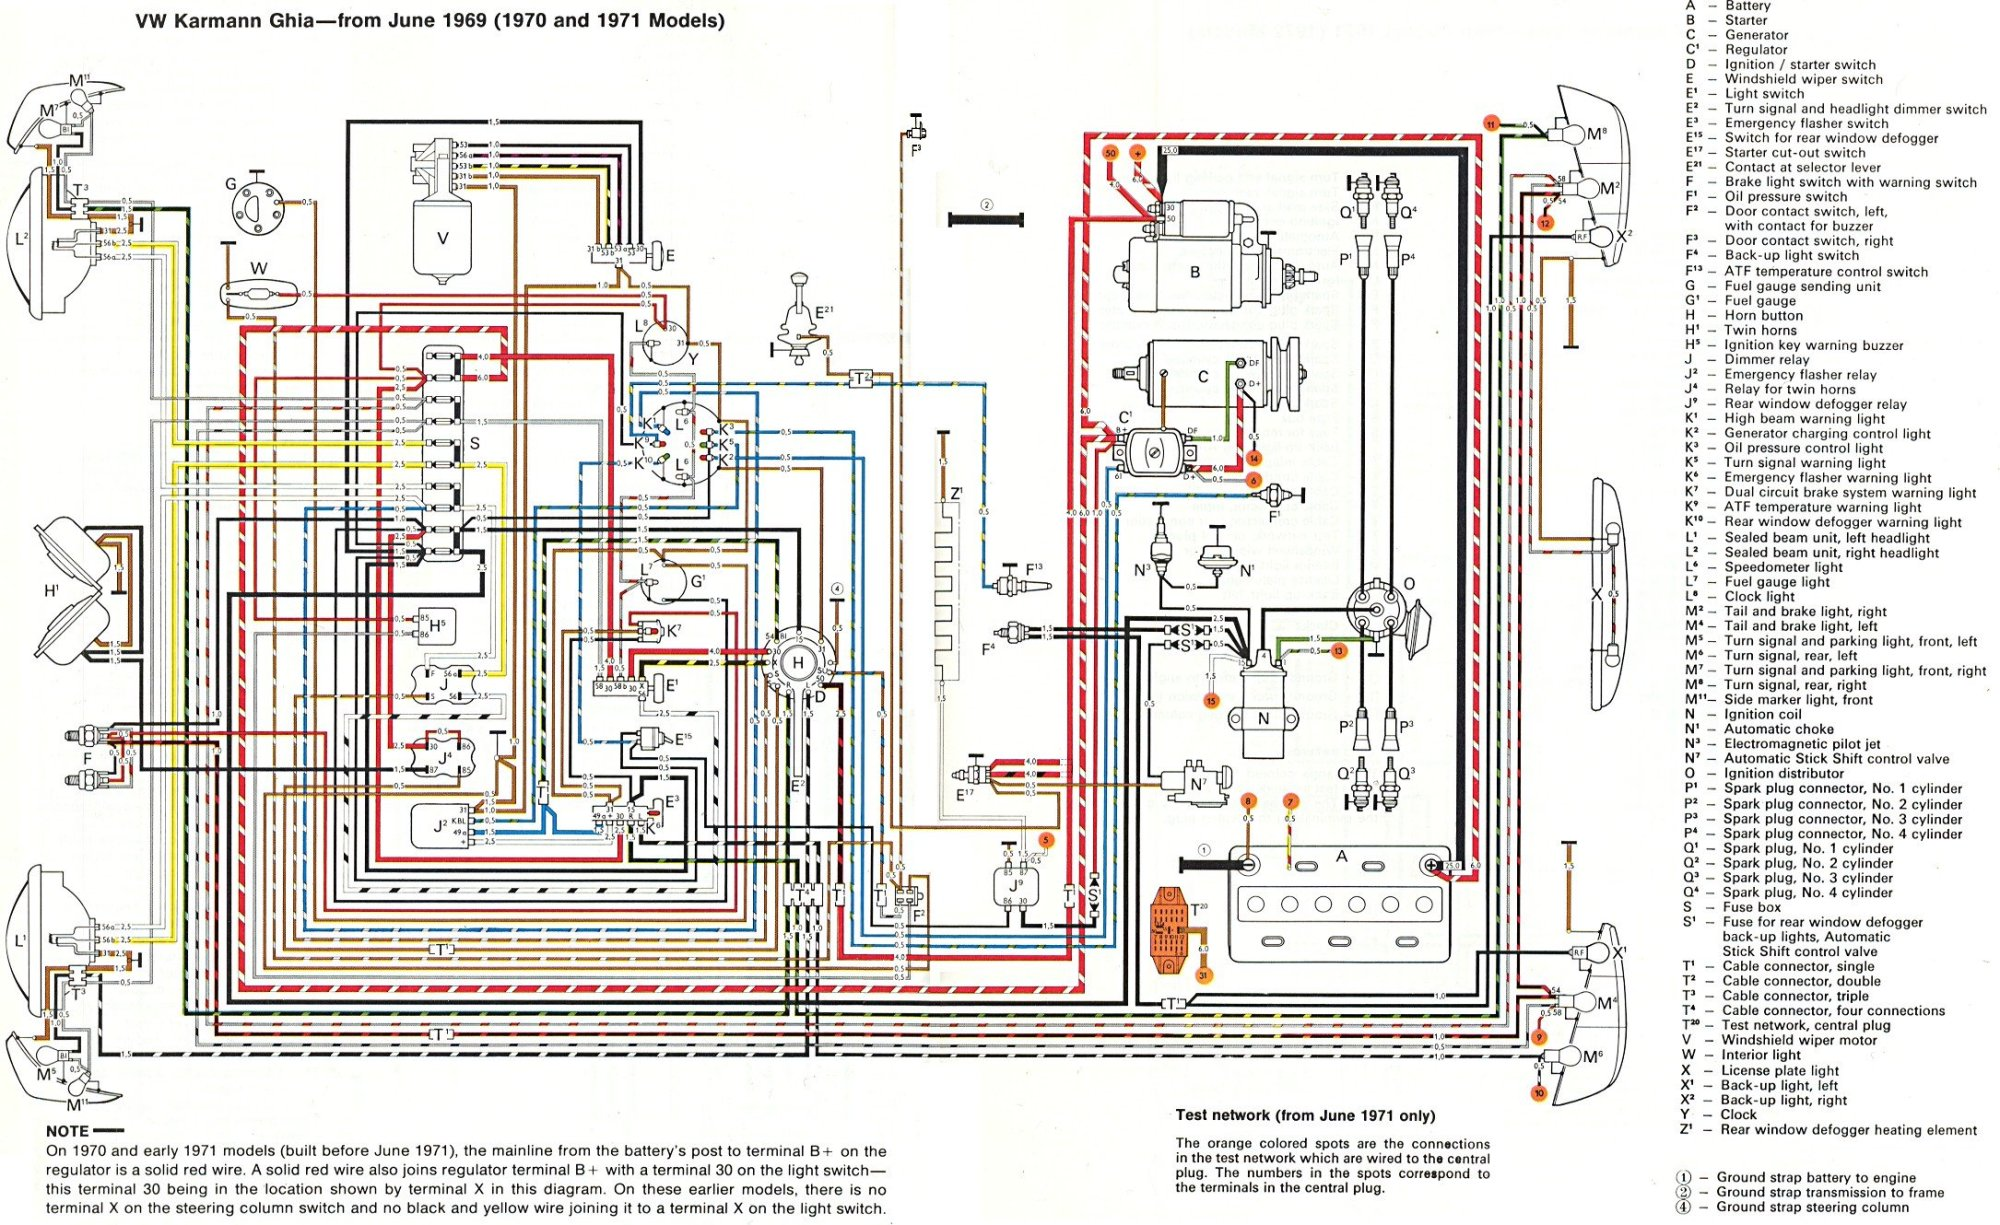 hight resolution of 67 fuse panel wiring diagram chevy nova wiring library rh 17 codingcommunity de 67 nova dash wiring diagram 72 nova wiring diagram